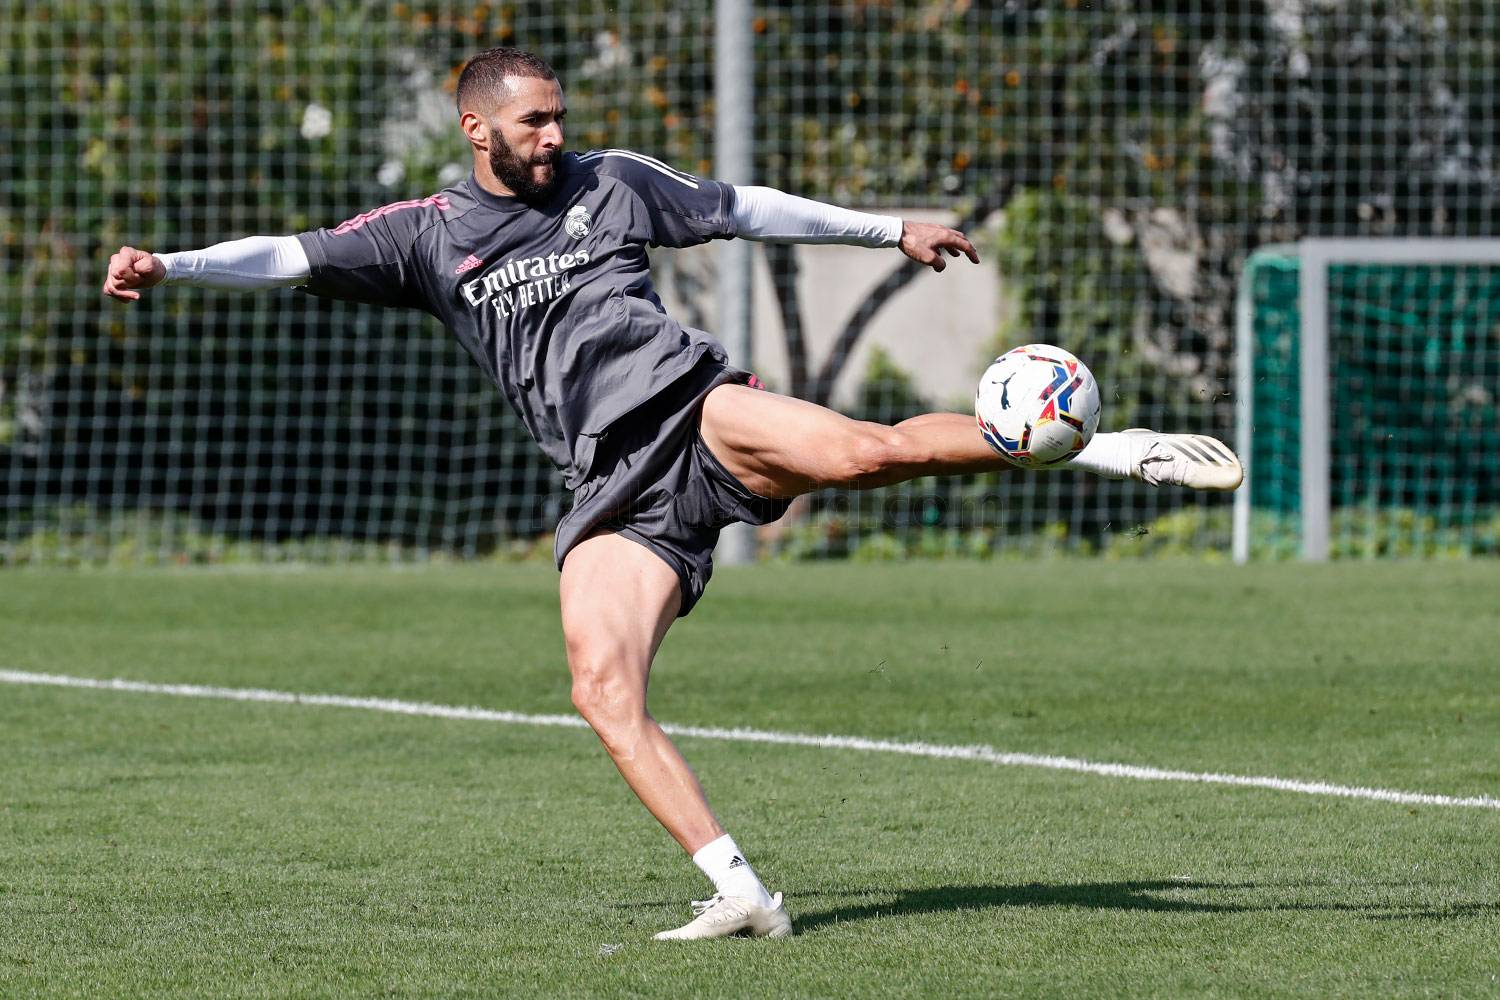 Real Madrid - Entrenamiento del Real Madrid  - 08-10-2020